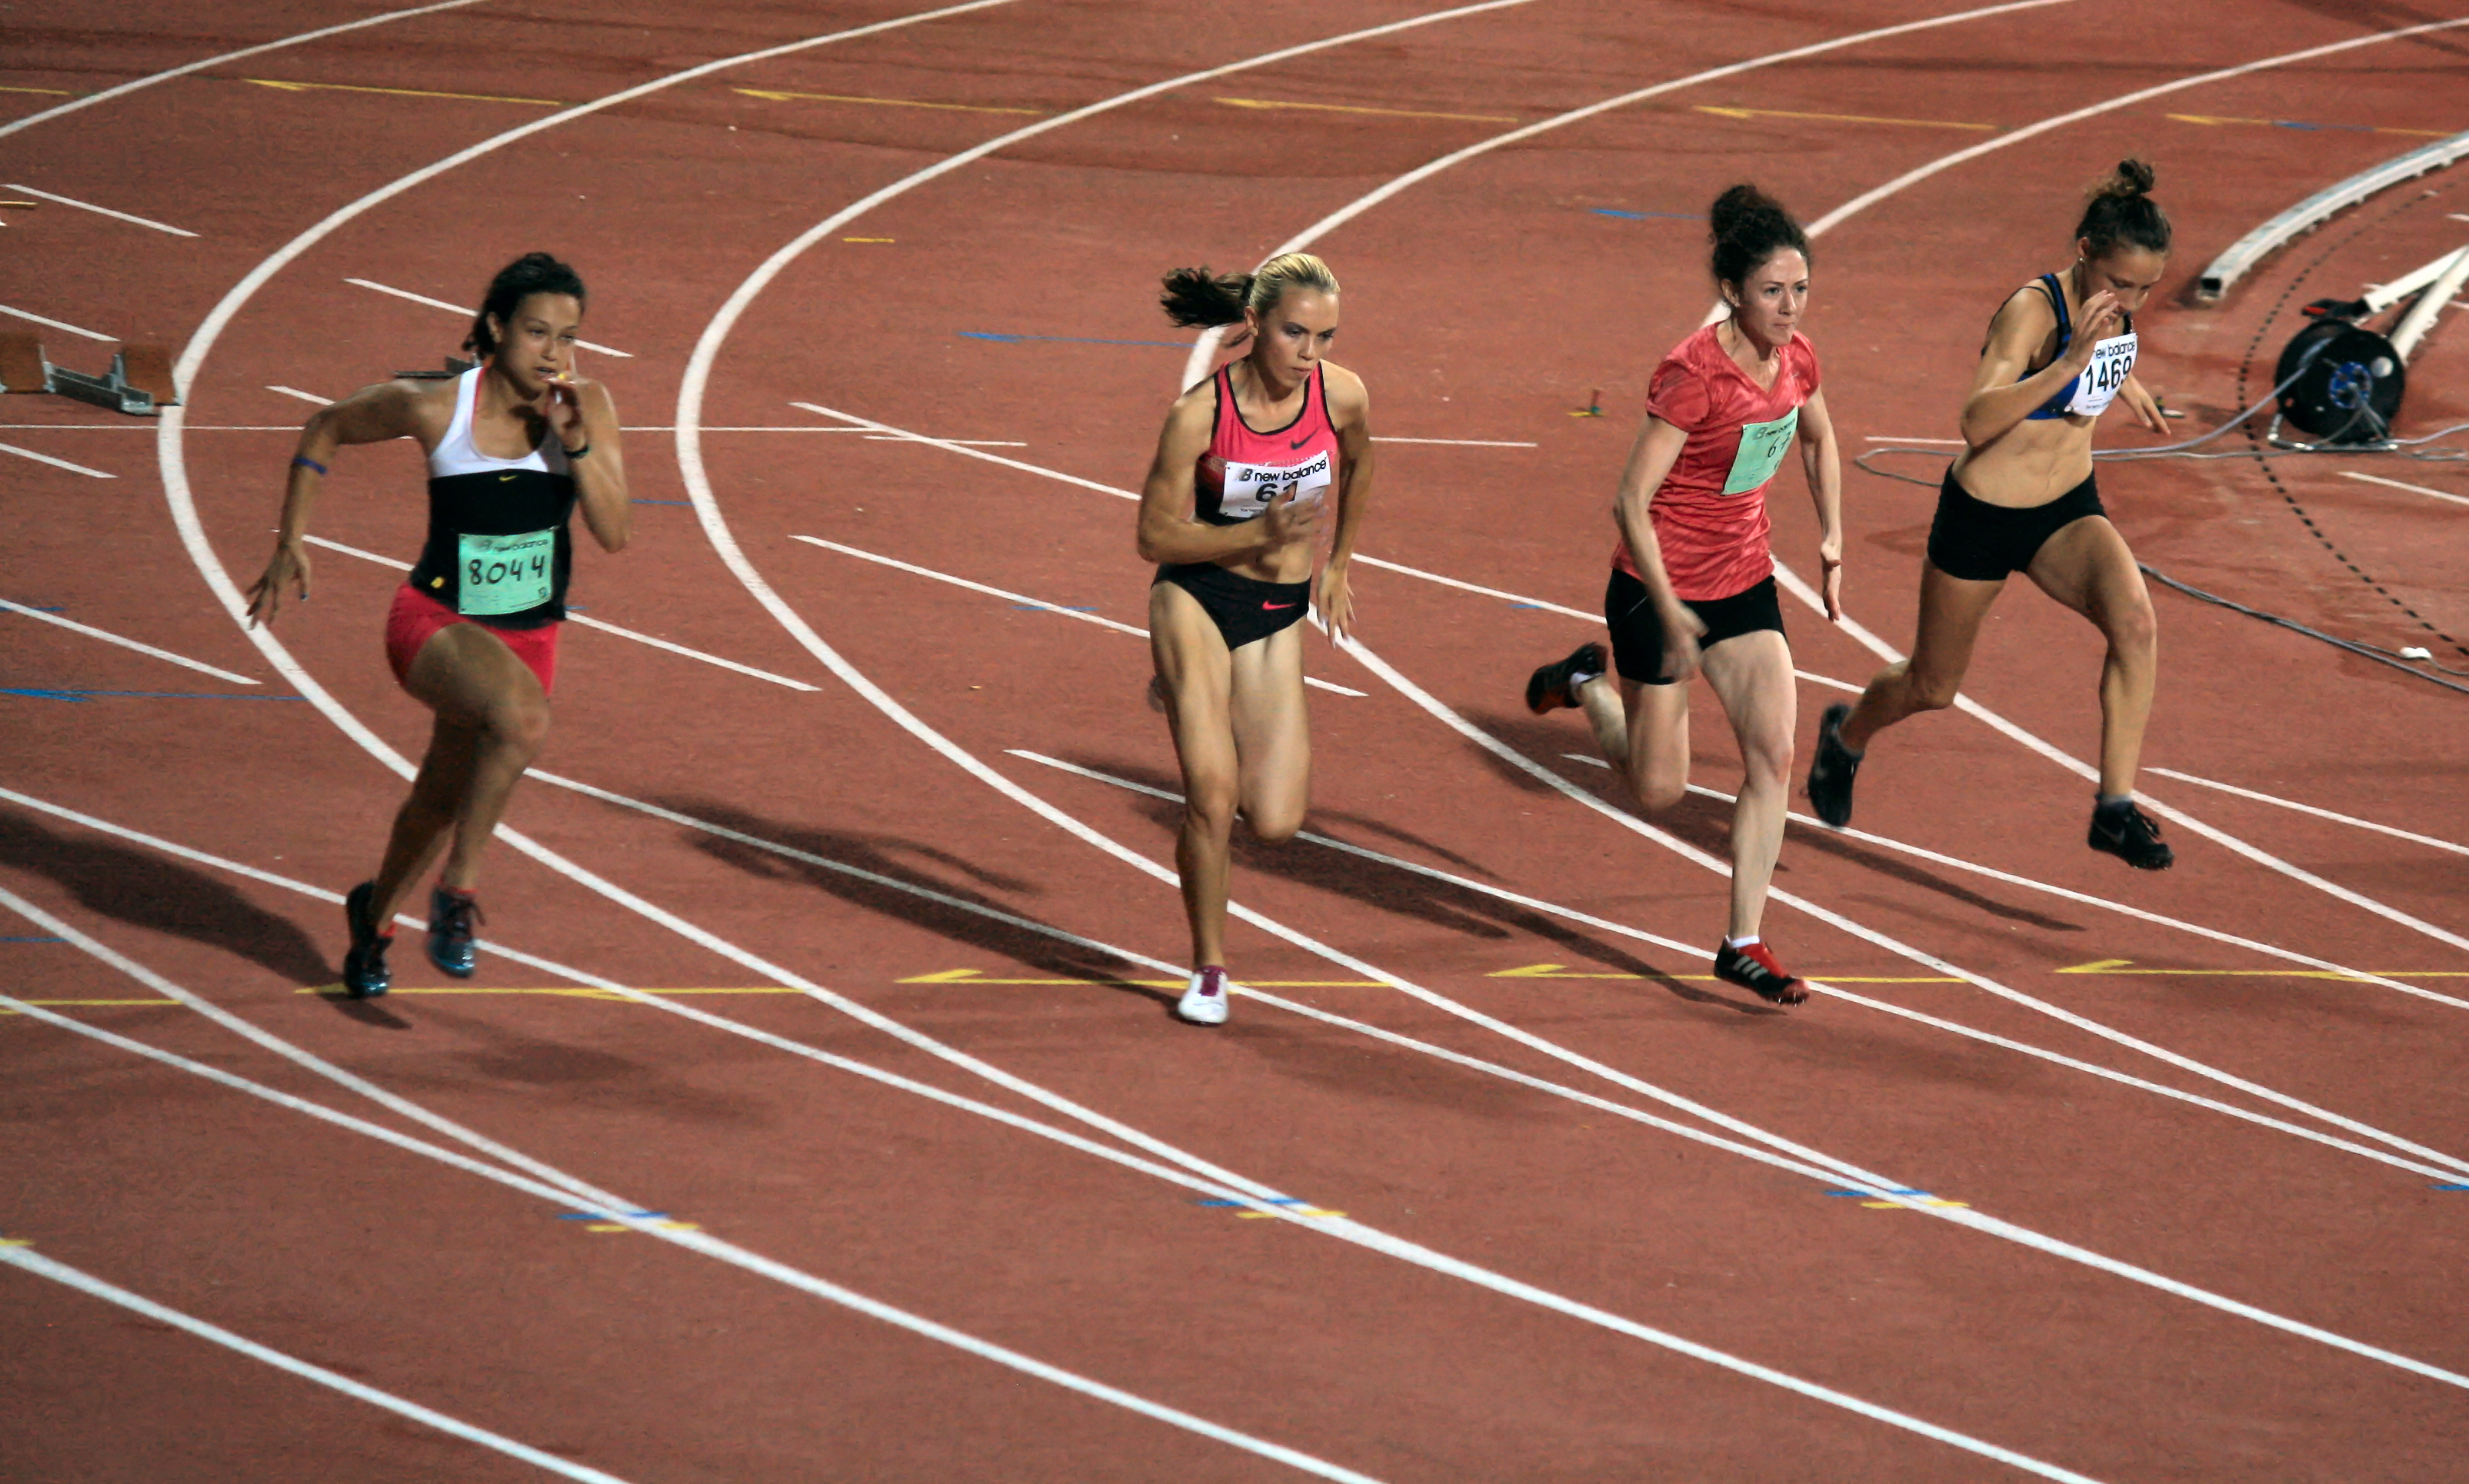 Athletics_Night_Competition_100m_women_sprint_29-07-2013